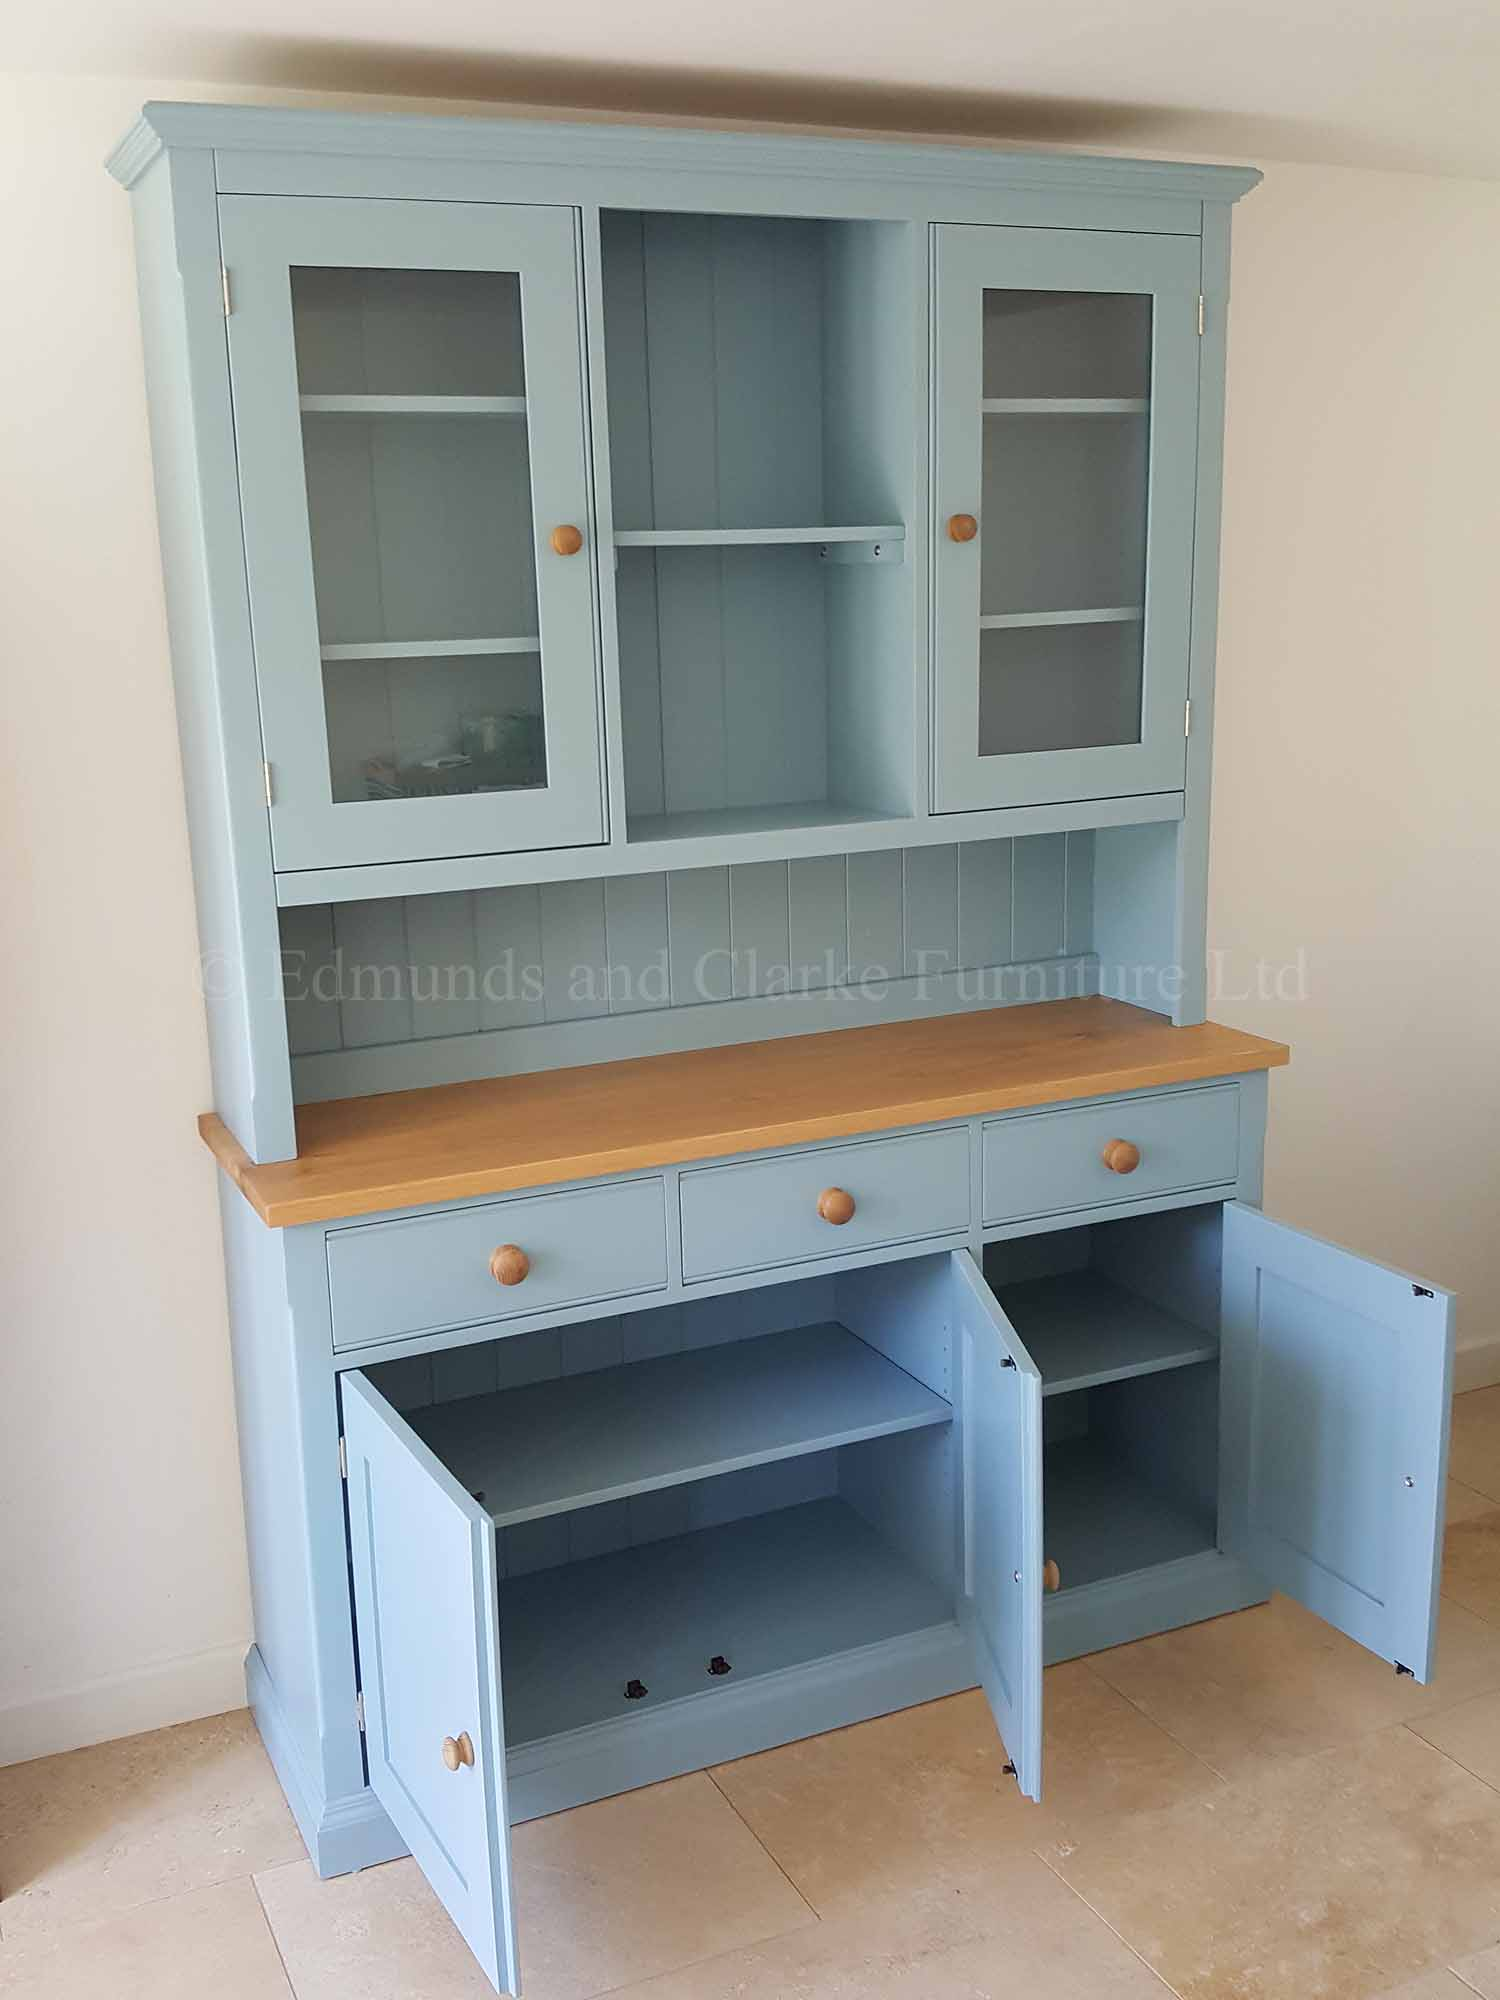 5ft painted glazed dresser with glazed rack and three door three drawer sideboard